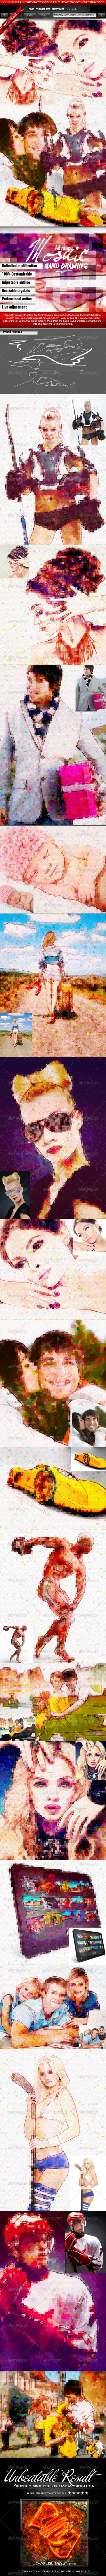 Advance Mosaic Hand Drawing - Photo Effects Actions